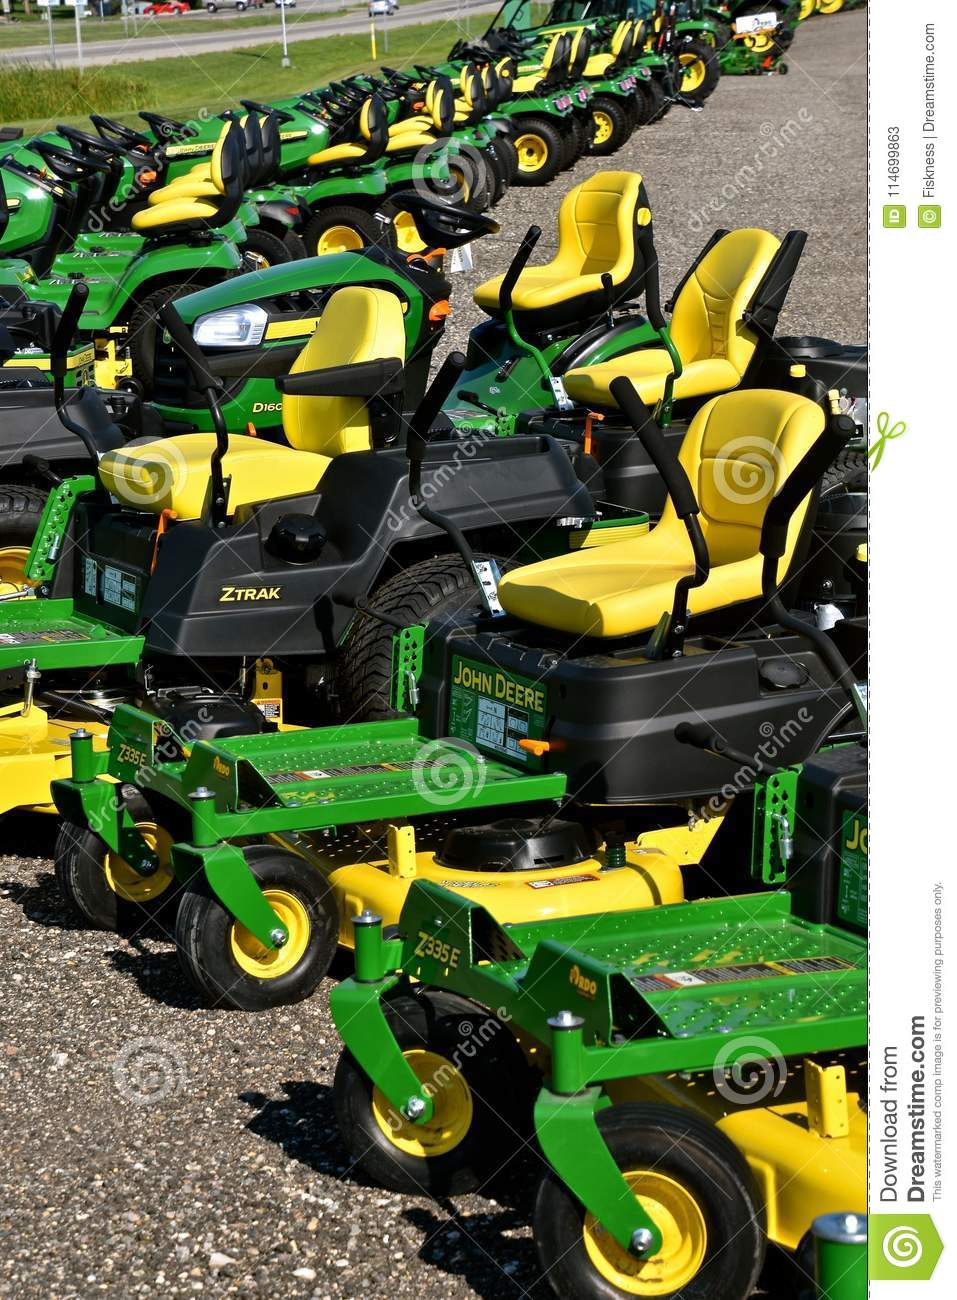 medium resolution of hawley minnesota august 22 2017 a row of green and yellow new riding lawn mower tractors are products of john deere co an american corporation that